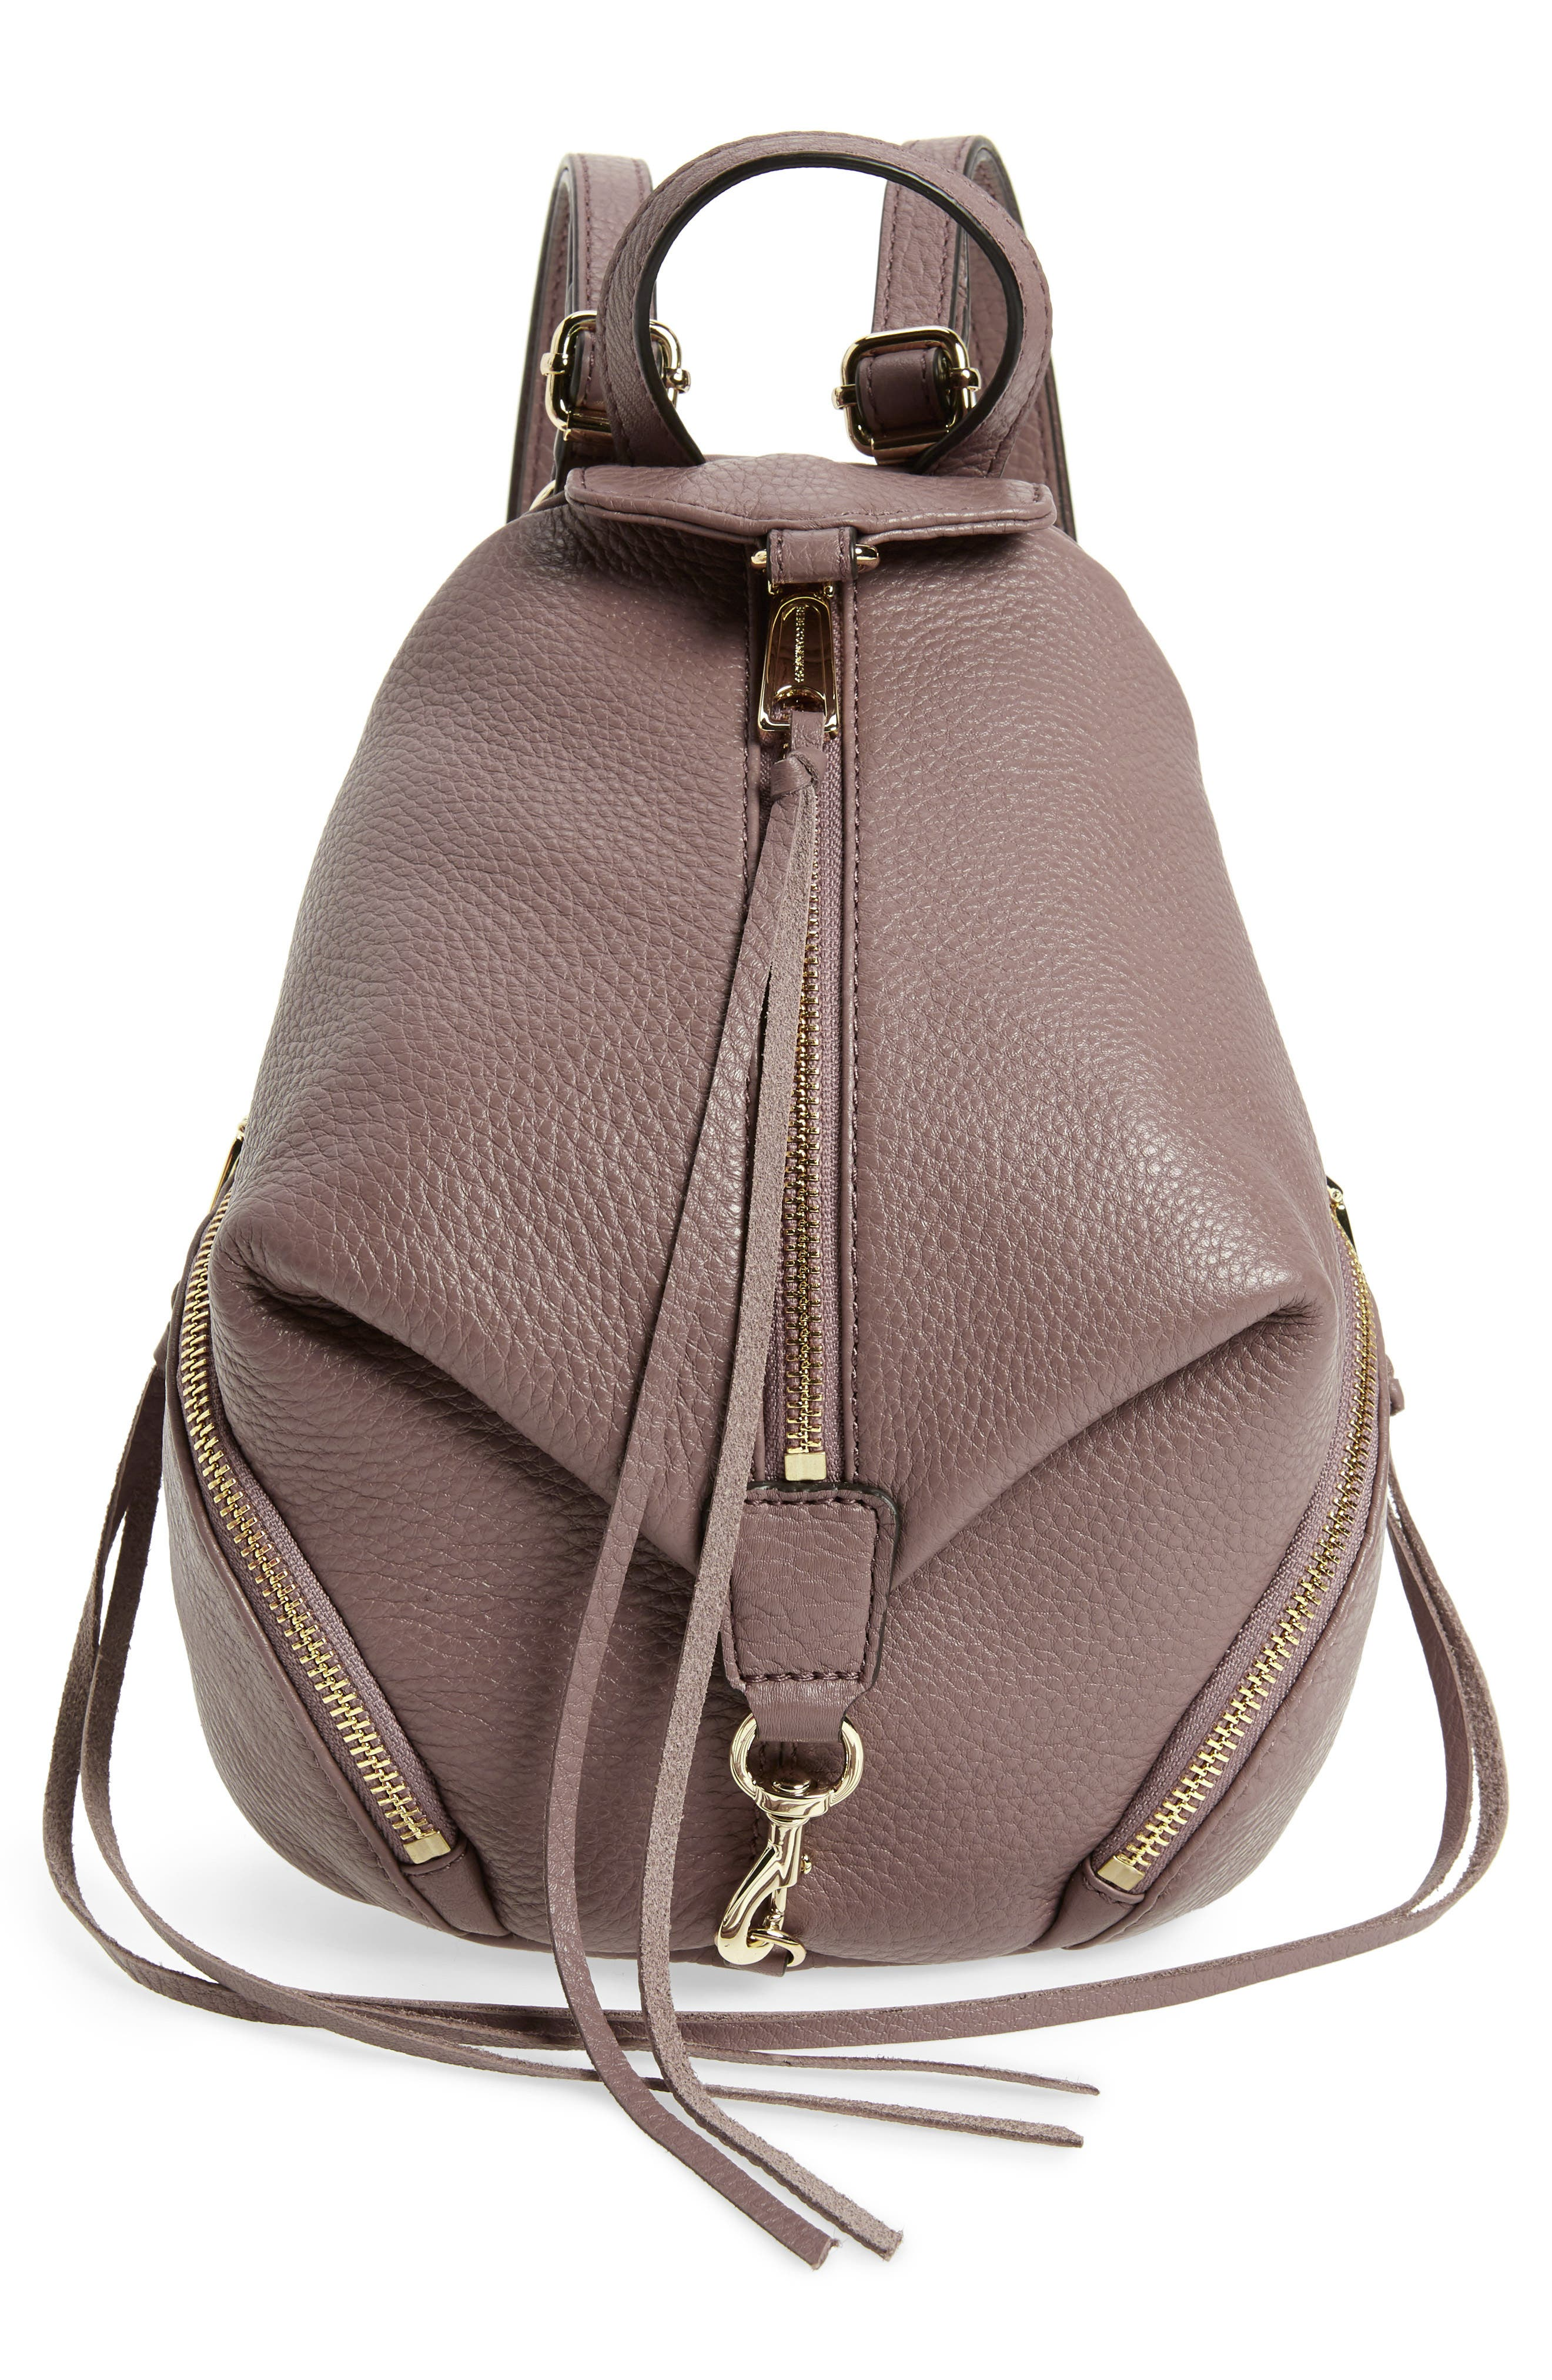 e7ec557e86e1 Leather Backpack Purse Nordstrom- Fenix Toulouse Handball